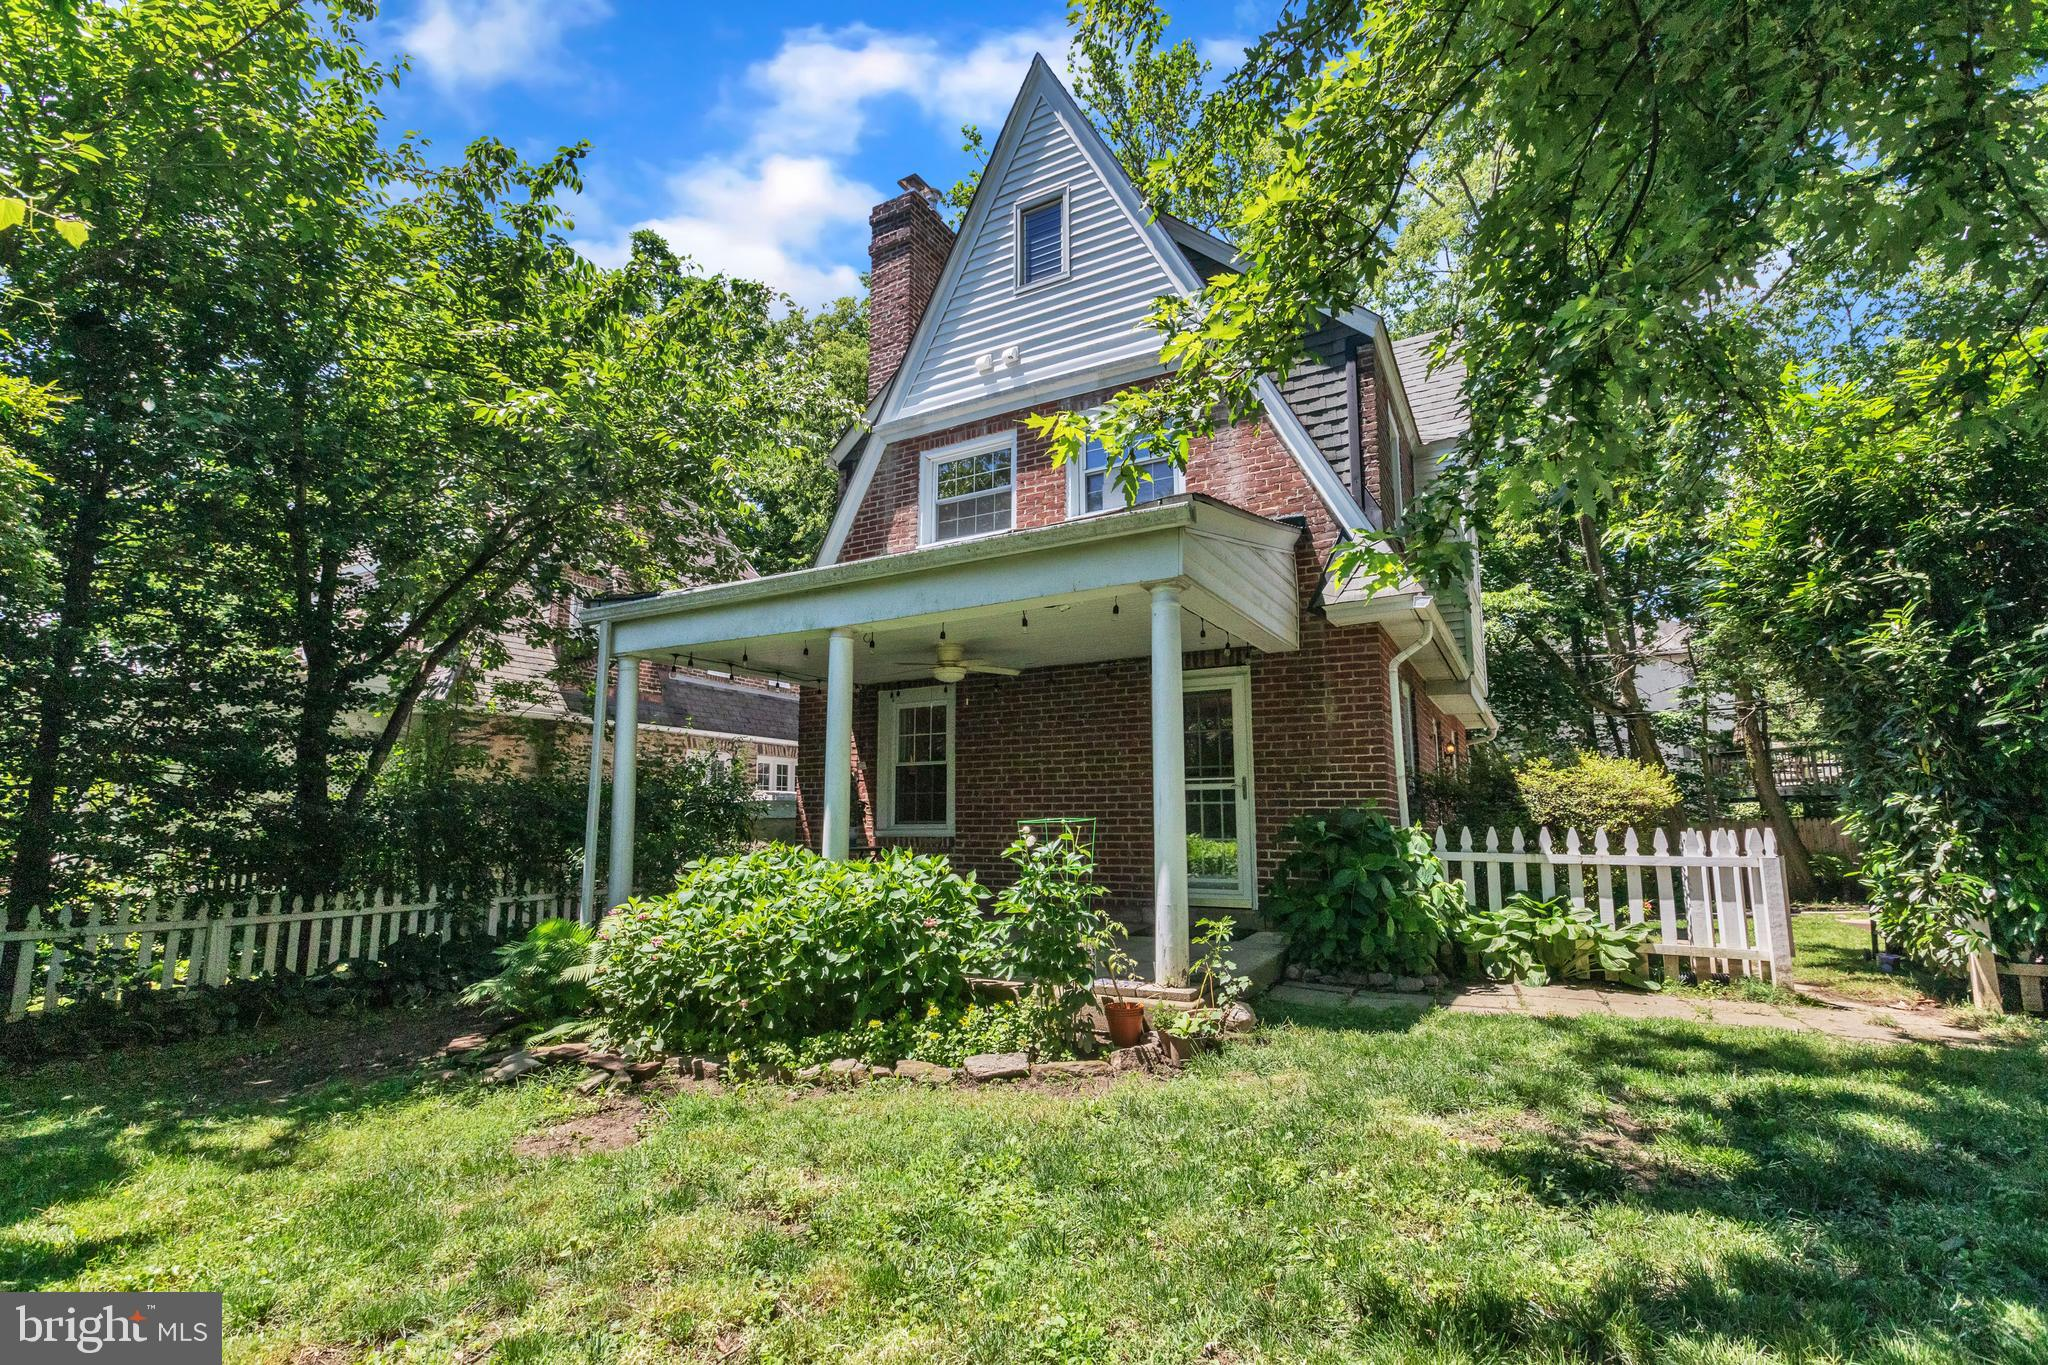 Welcome to this charming 1920s Tudor cottage in the coveted Borough of Narberth. A covered porch offers a relaxing outdoor sitting area and overlooks a level backyard enclosed by a white picket fence. Inside, the first floor consists of a spacious living room, complete with a wood-burning fireplace, a sunny kitchen, and dining room. Up the winding, oak staircase, you'll find a nicely sized primary bedroom with a half-bath ensuite equipped with stackable washer and dryer. Two more bedrooms and a full bath complete this level. Each bedroom is bright and sunny with large closets. Beautiful old-growth oak hardwood floors flow throughout the entire home. A scenic, 10-minute stroll takes you into the heart of downtown Narberth, which boasts boutique shops, neighborhood eateries, and beautiful parks. Hop onto the train at Narberth station, and in 15 minutes you're in Center City, or a quick 5 minutes in the opposite direction, you're at Ardmore's Suburban Square shopping district. Upgrades include brand new natural gas boiler (Dec 2020), new flue liner for gas water heater and boiler (Jan 2021), and completely upgraded electric panel and wiring. Don't wait on this Narberth gem. This house will not last long on the market!